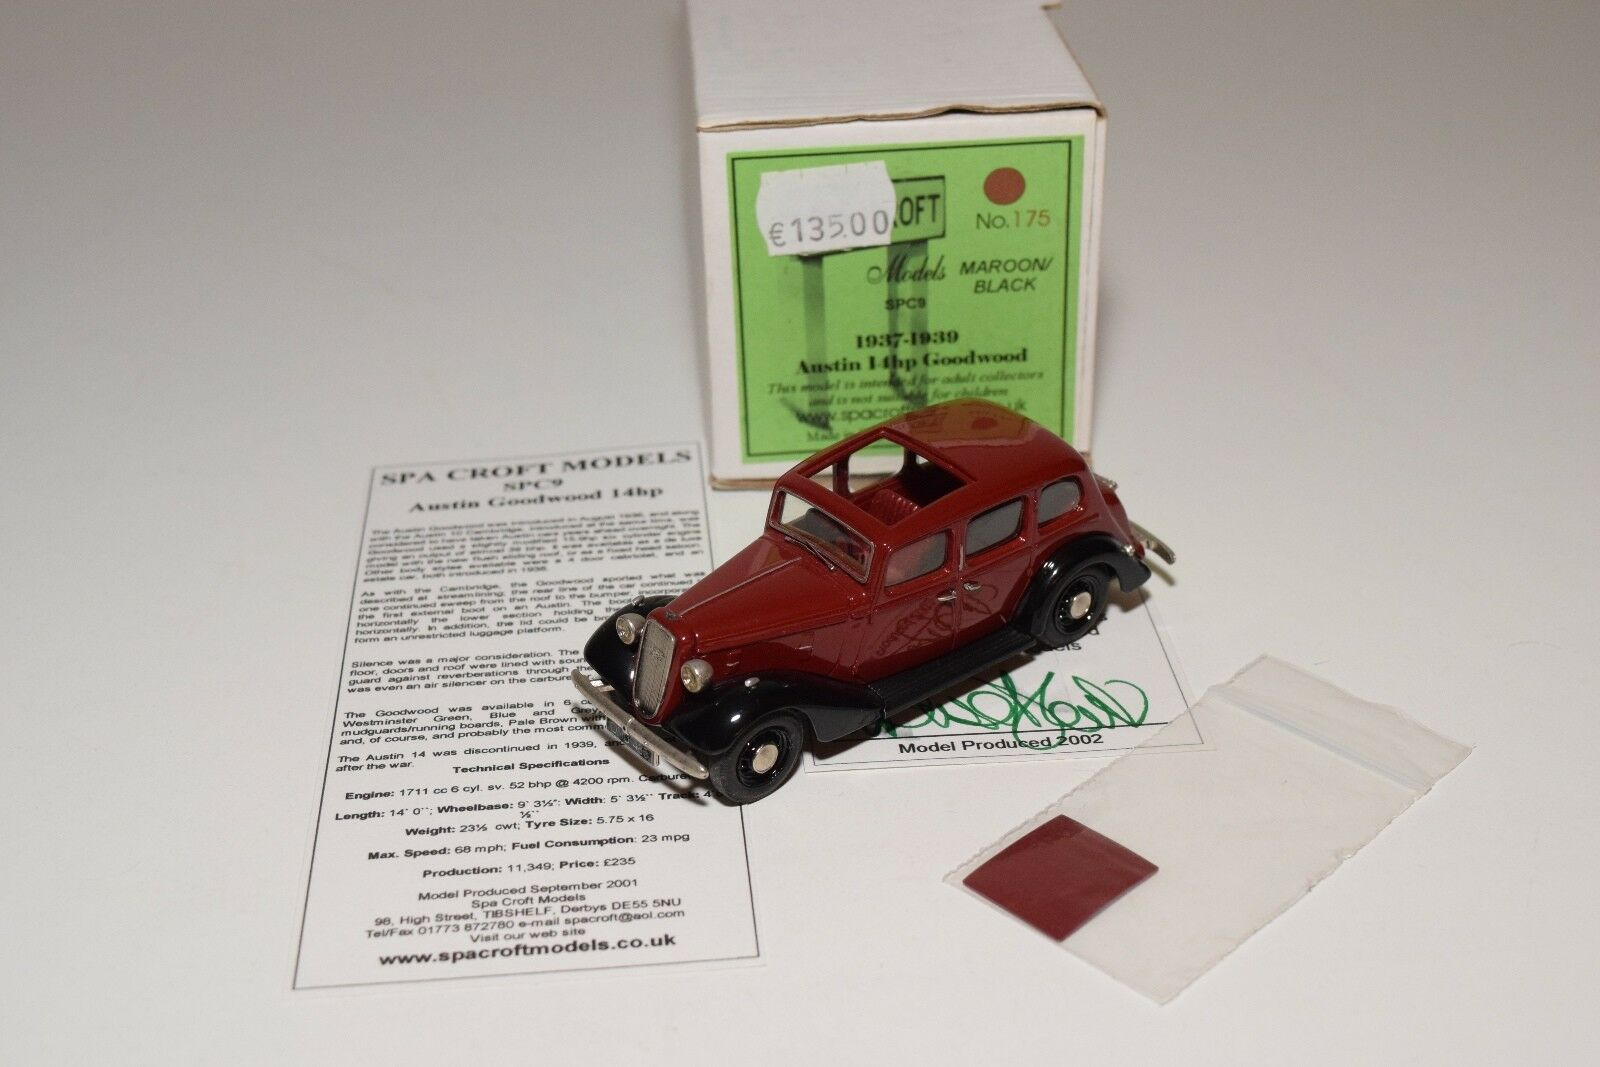 SPA CROFT MODELS SPC9 AUSTIN 14HP GOODWOOD 1937-1939 MAROON Negro MINT BOXED